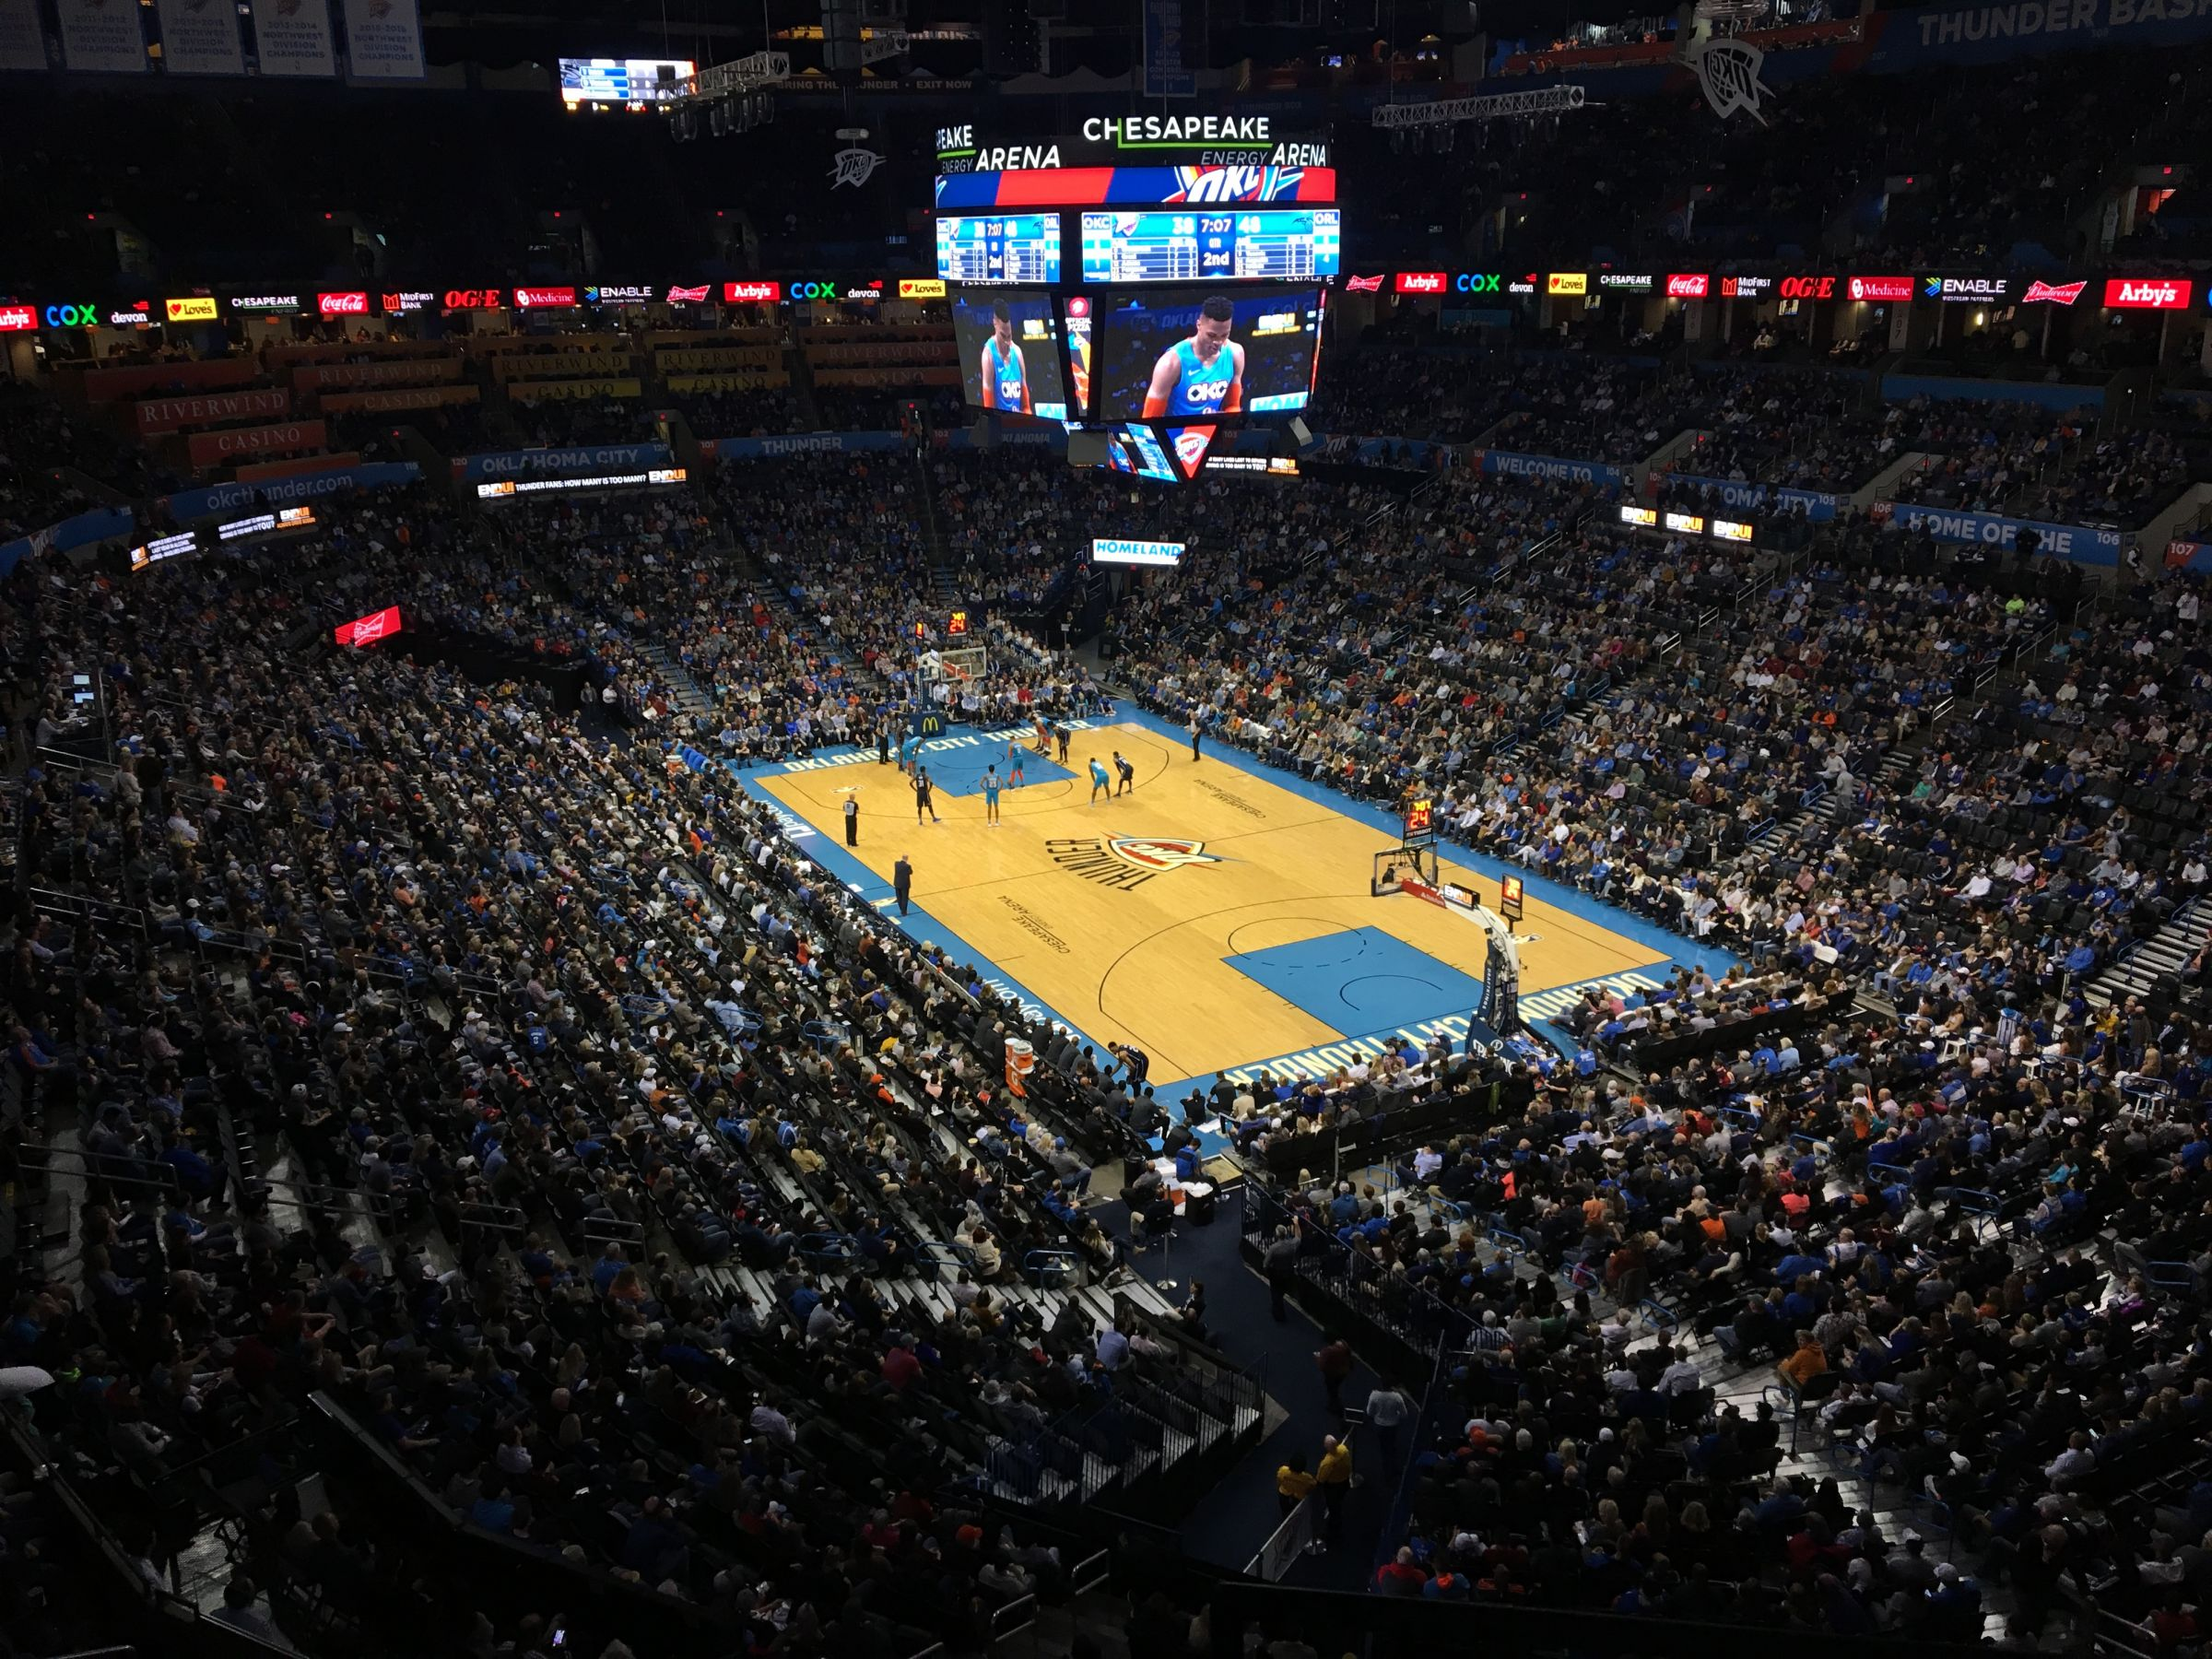 Seat View for Chesapeake Energy Arena Section 318, Row A, Seat 16